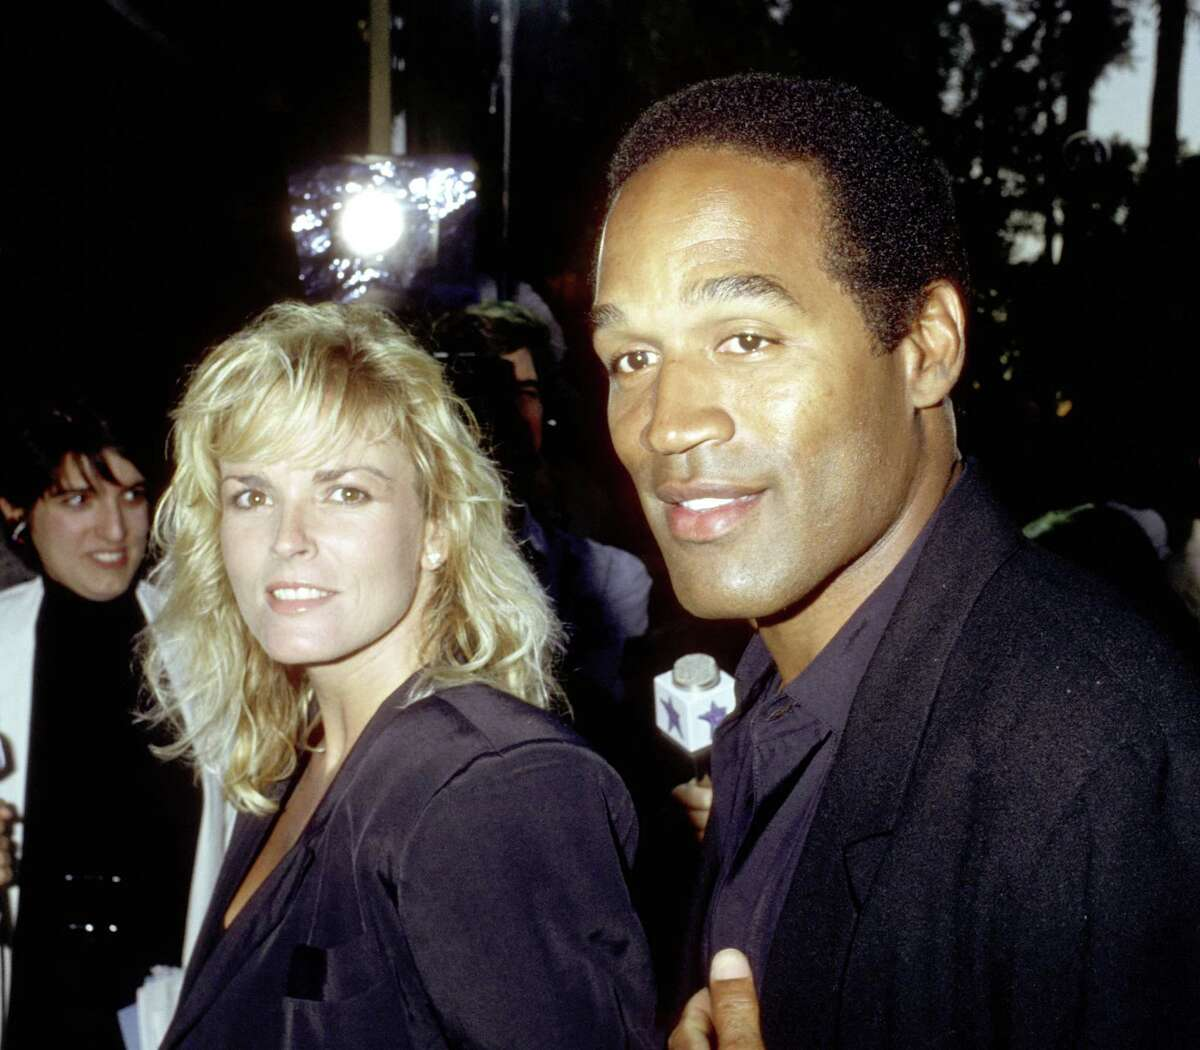 O.J. Simpson hounded by Fred Goldman for post-prison